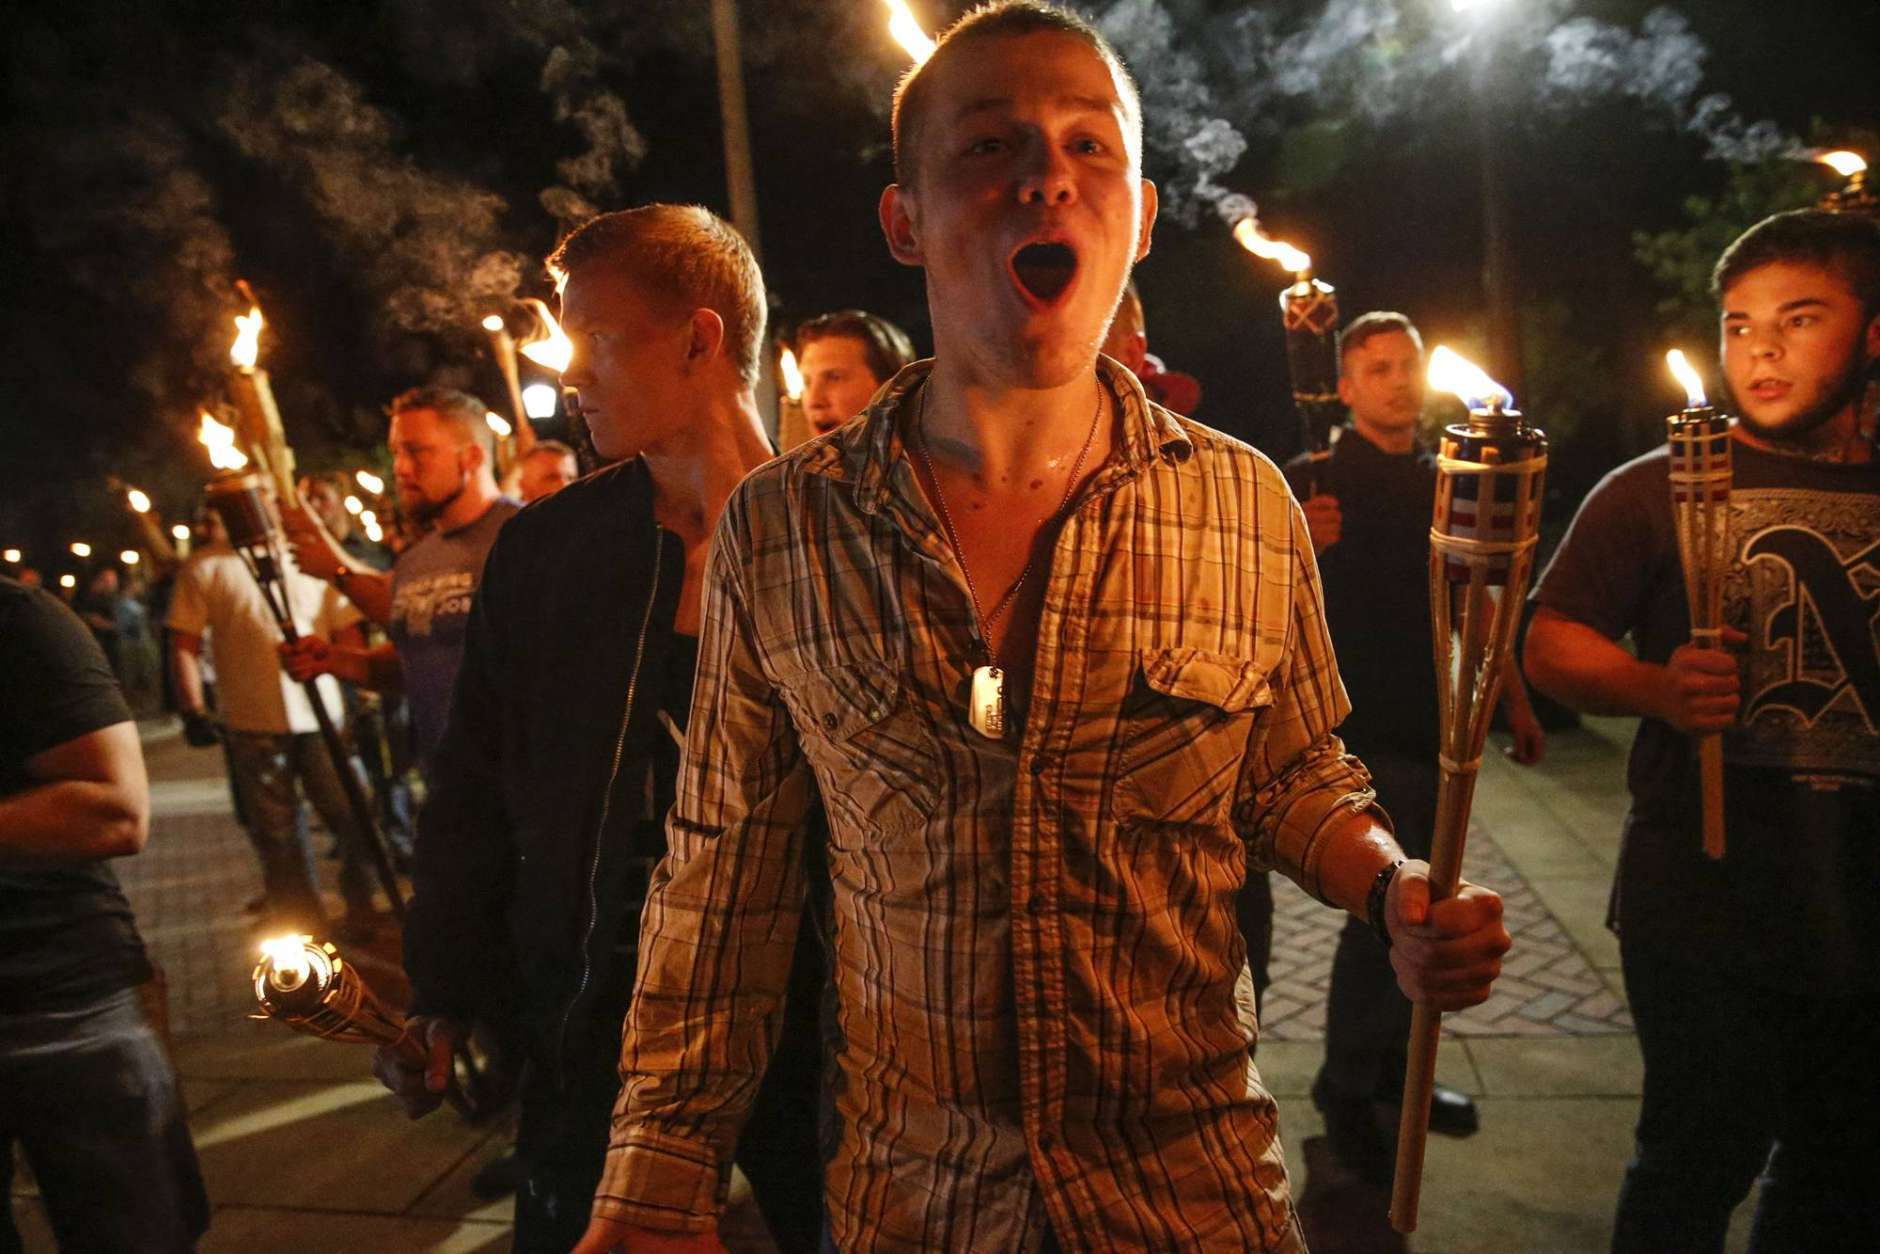 In this photo taken Friday, Aug. 11, 2017, multiple white nationalist groups march with torches through the UVA campus in Charlottesville, Va.   Hundreds of people chanted, threw punches, hurled water bottles and unleashed chemical sprays on each other after violence erupted at a white nationalist rally in Virginia. (Mykal McEldowney/The Indianapolis Star via AP)